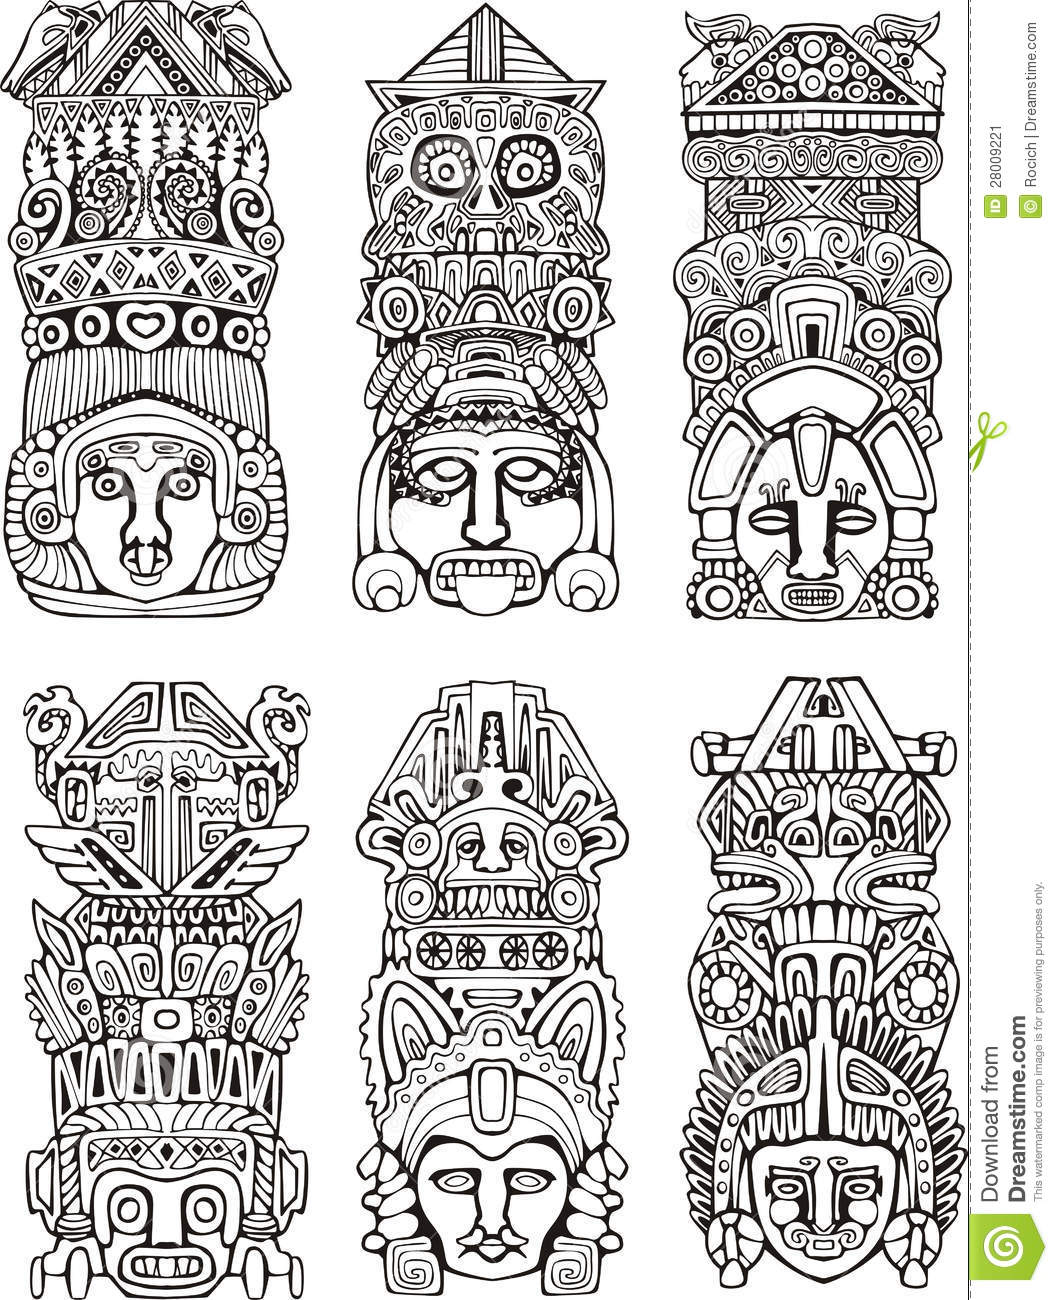 Totem Pole Design Template